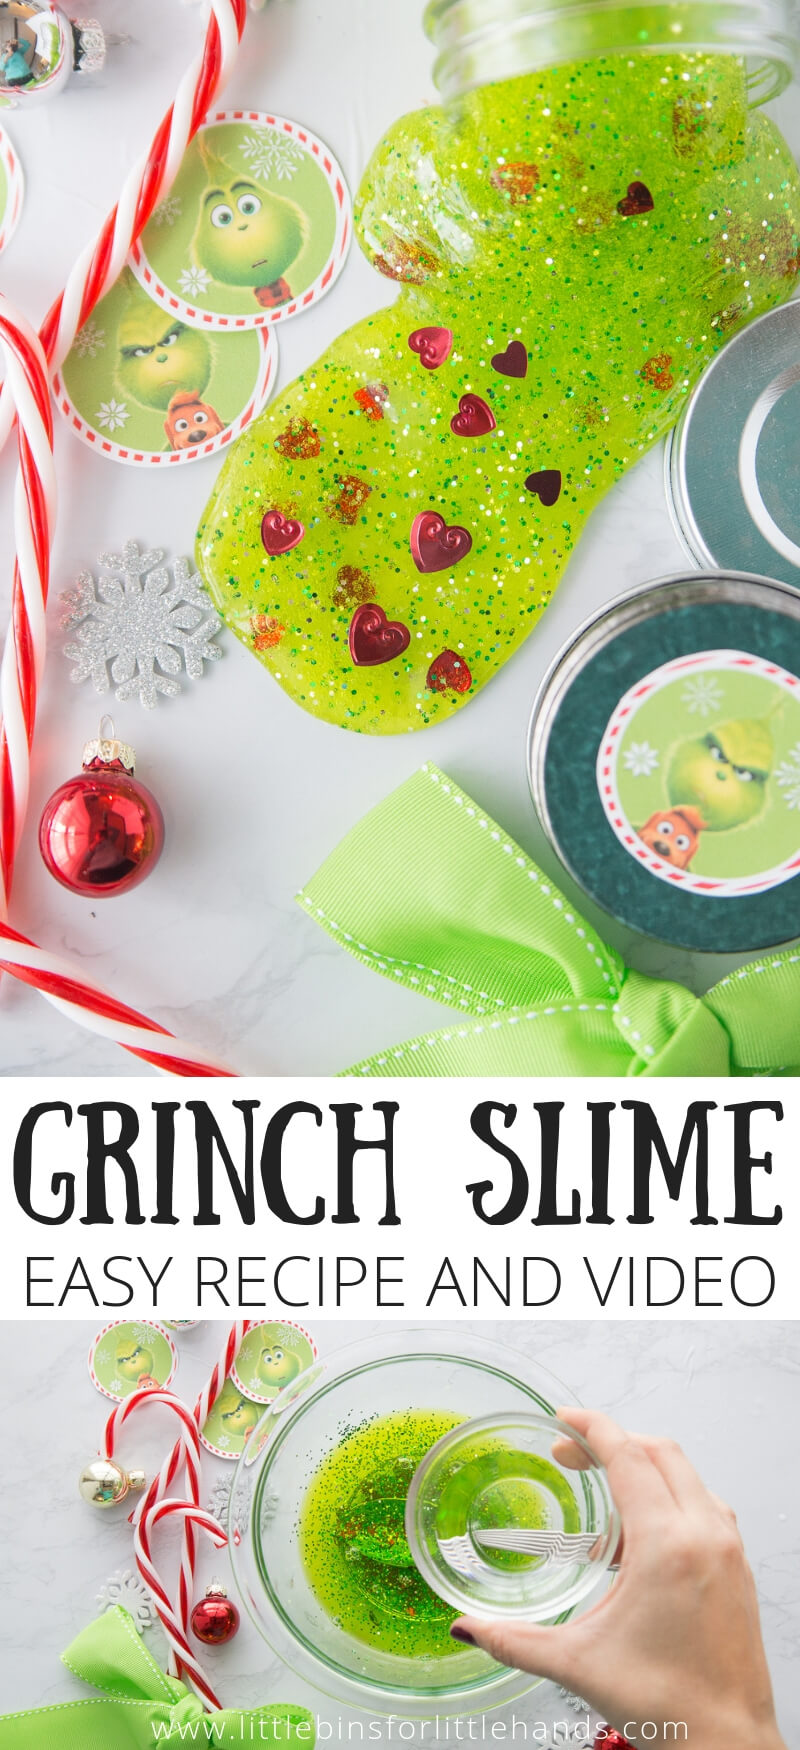 Grinch Slime Recipe For Easy Kids Holiday Activities